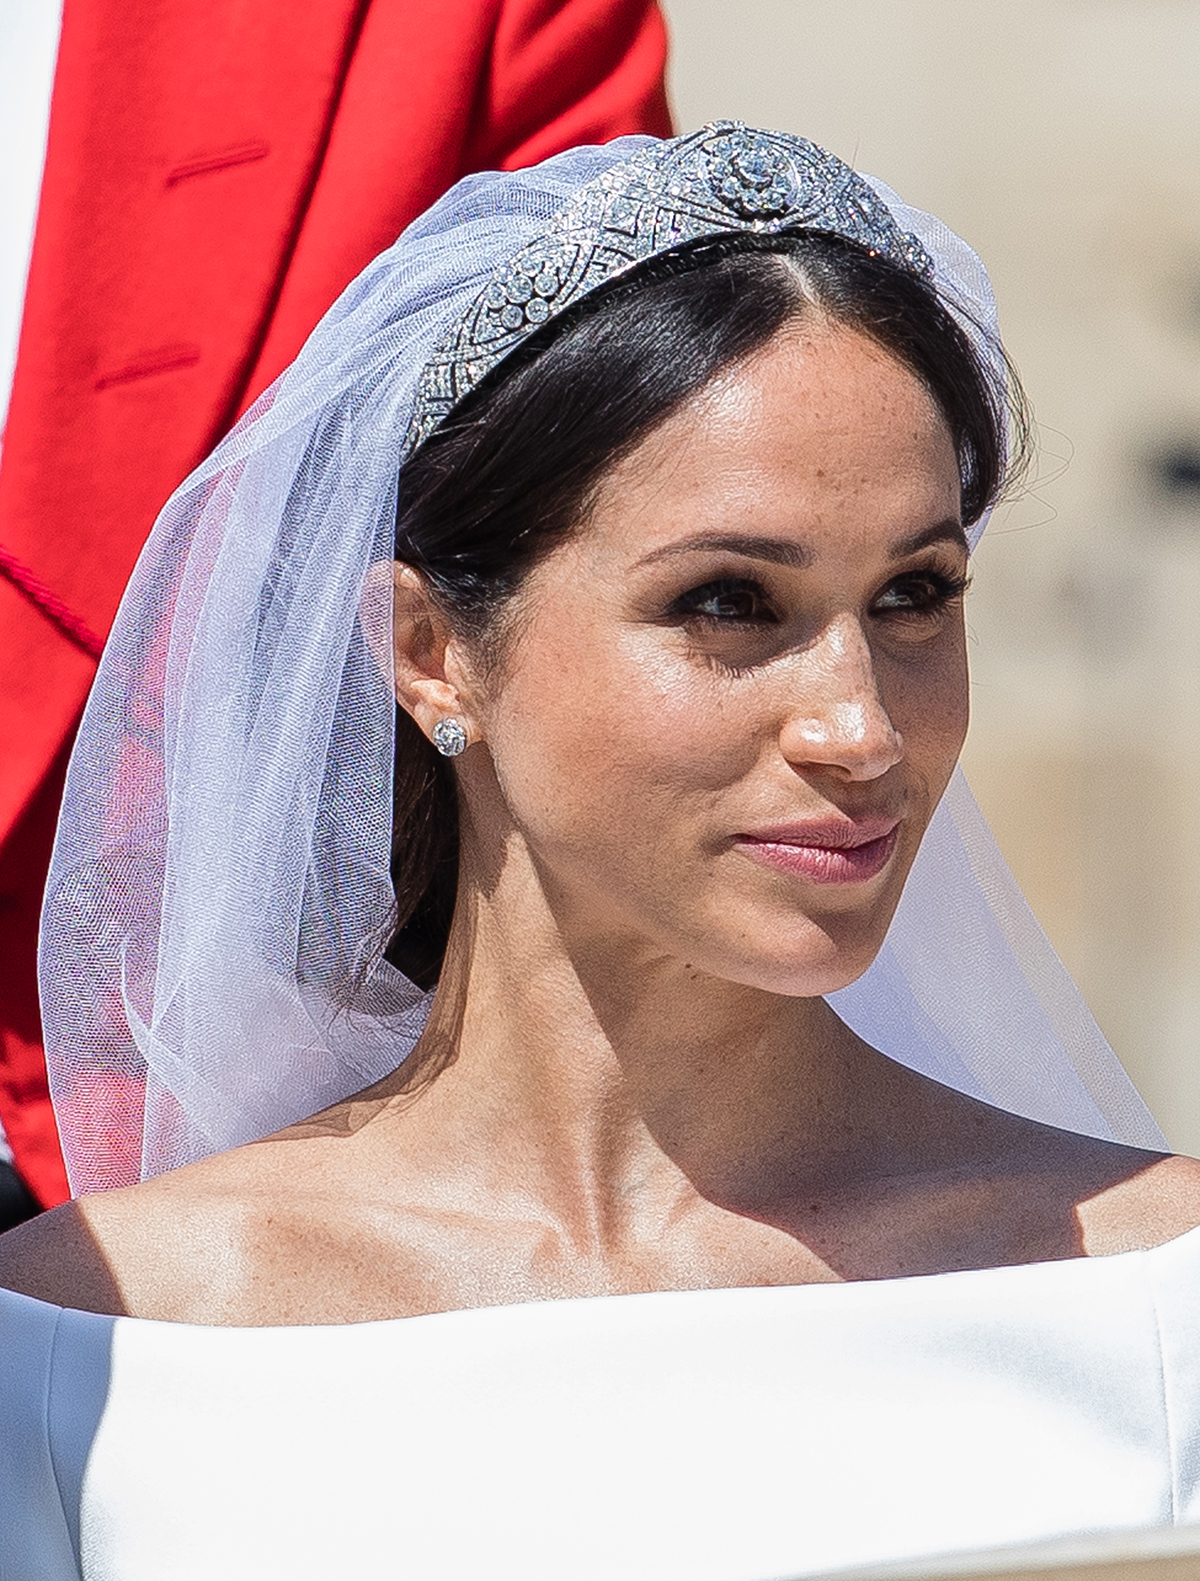 Meghan Markle's Makeup Artist Shared a Genius Trick to Seamlessly Cover Pimples